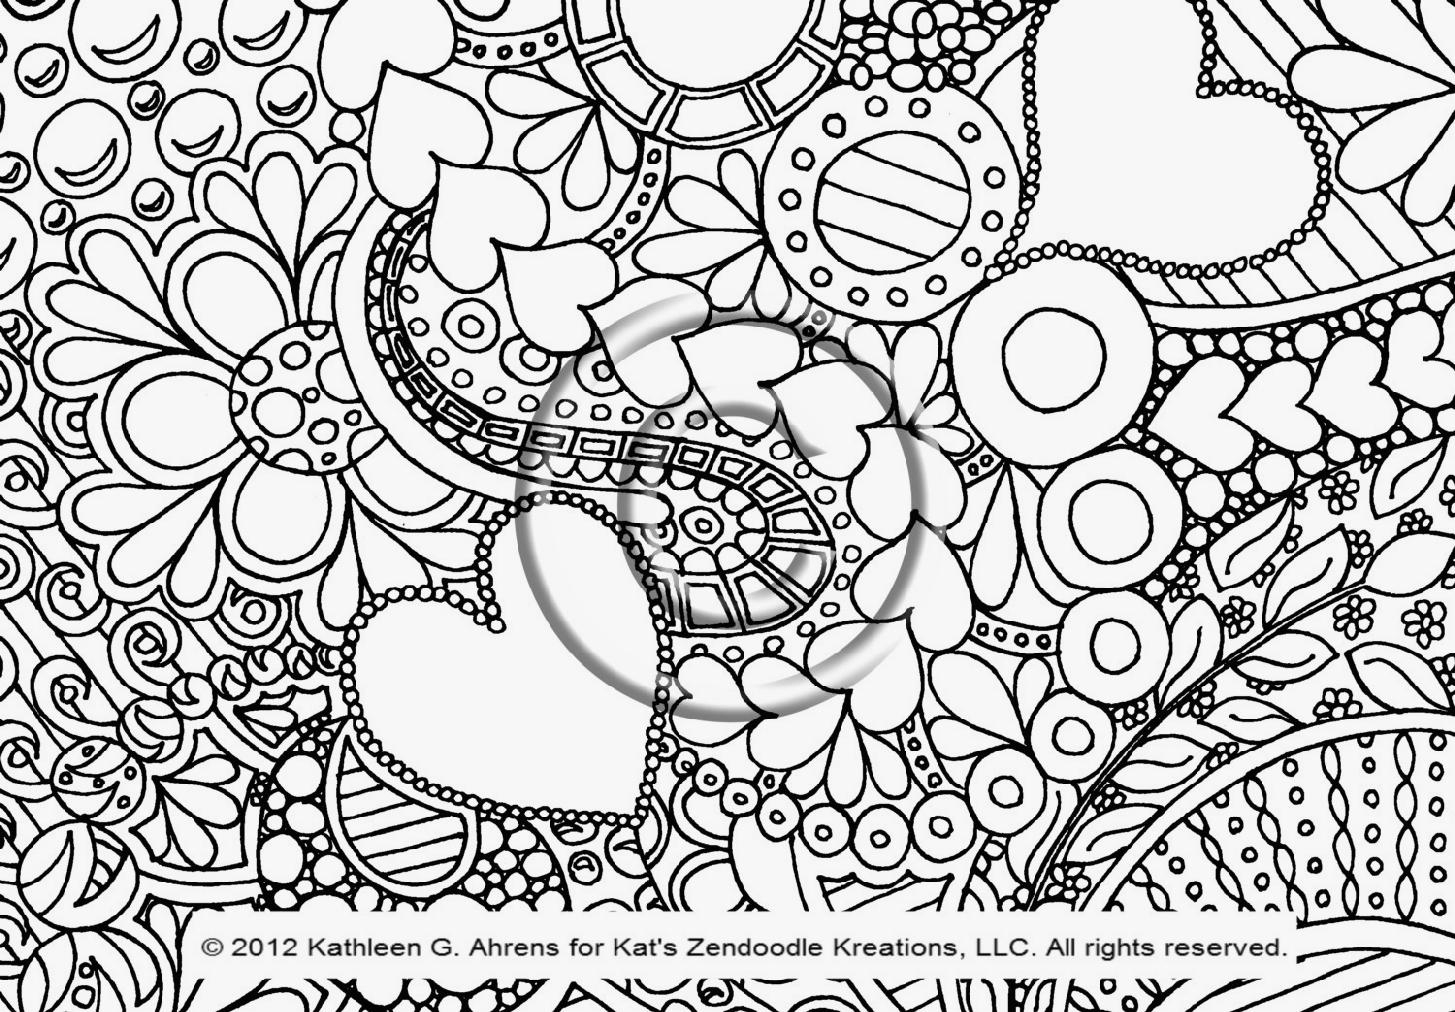 Coloring Pages : Doodle Art Coloring Pages Csad Me Free Maryeit - Free Printable Doodle Art Coloring Pages